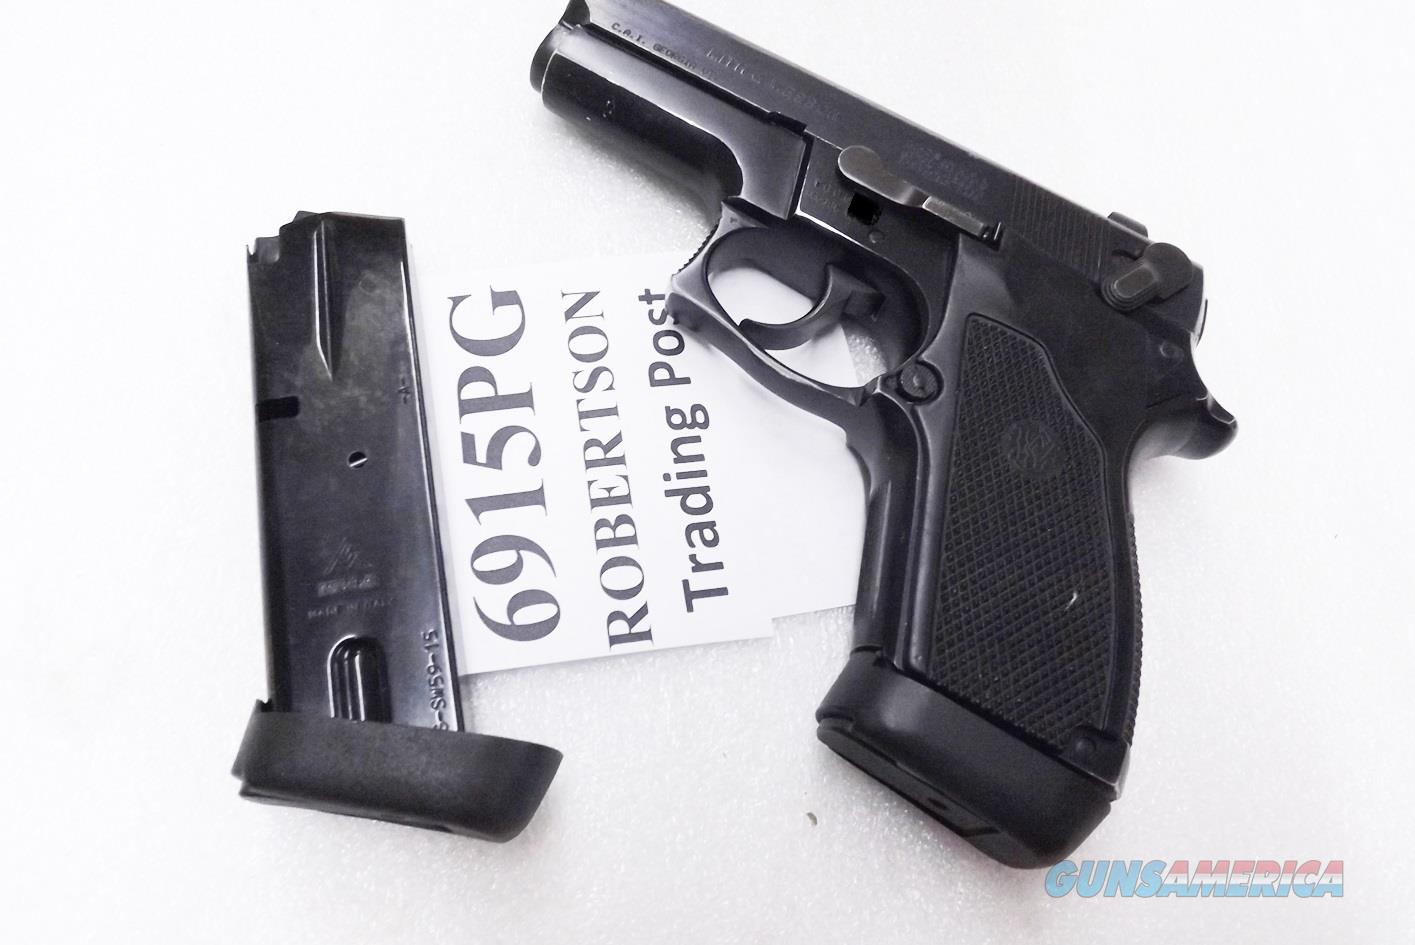 Smith & Wesson 9mm model 6906 Extended 15 Shot Magazine Mec-Gar 5915B with PGS Grip Adapter all new fits S&W models 469 669 6904 6906 6946 XM6915PG  Non-Guns > Magazines & Clips > Pistol Magazines > Smith & Wesson